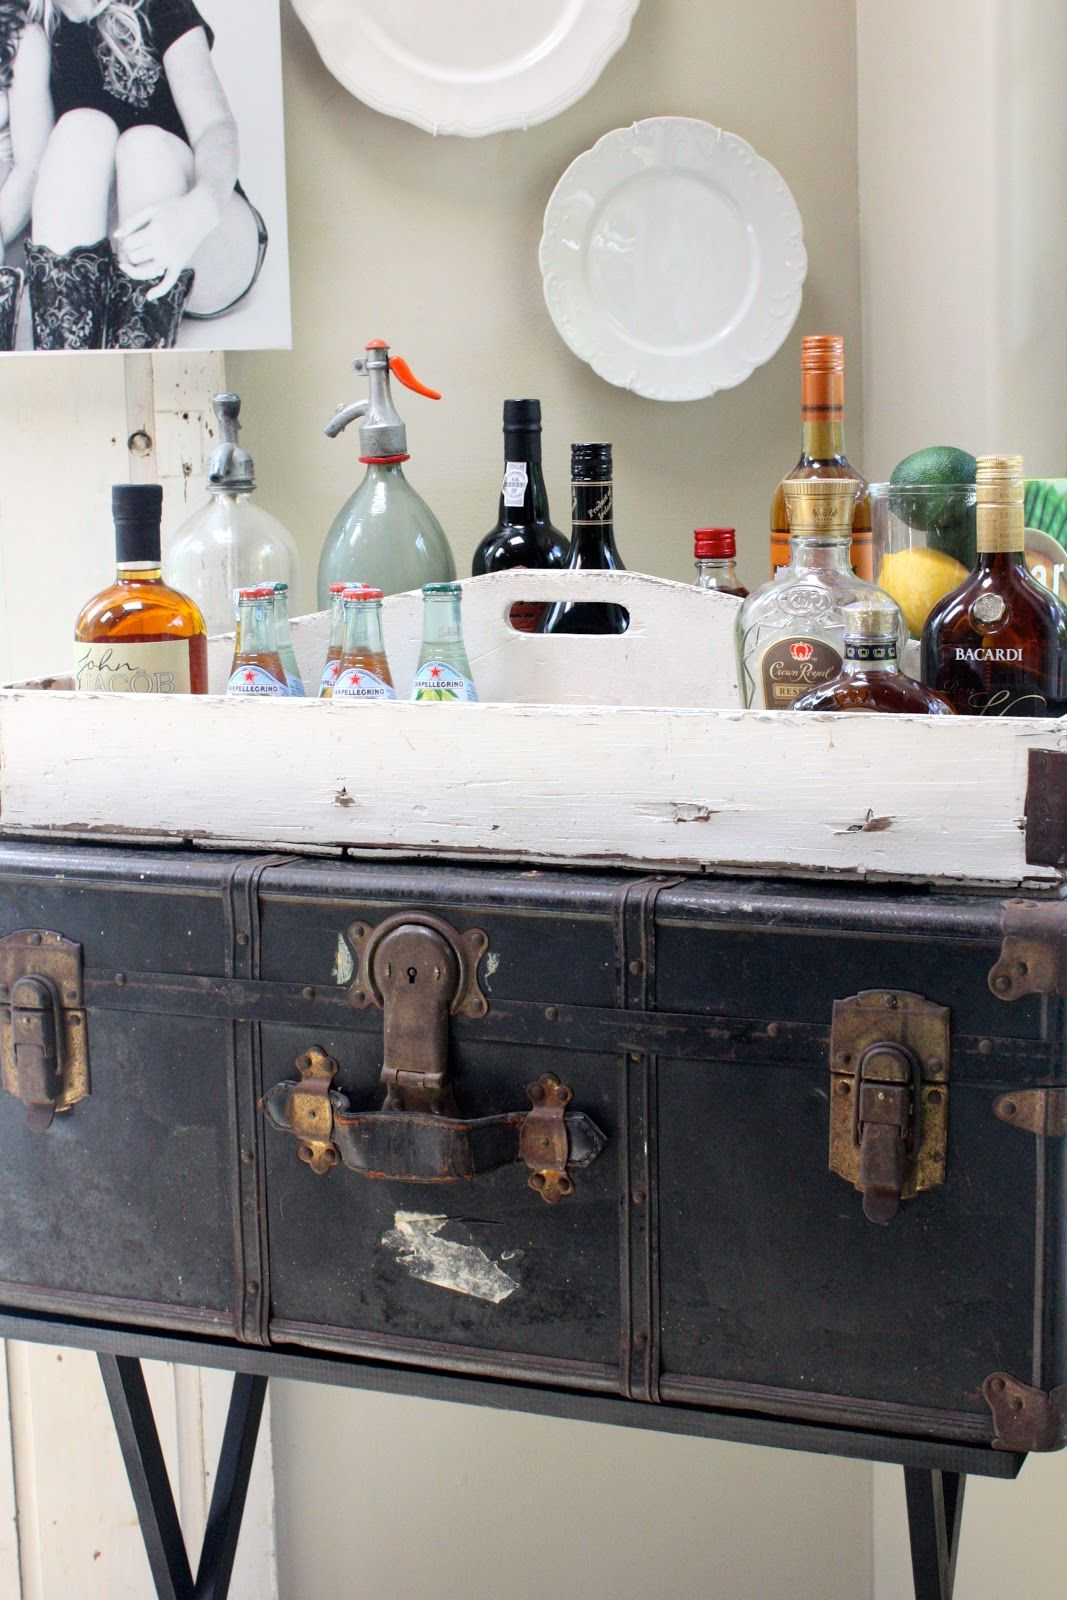 Bar Cart Ideas  Put A Suitcase And Tray On A Folding Butleru0027s Table!